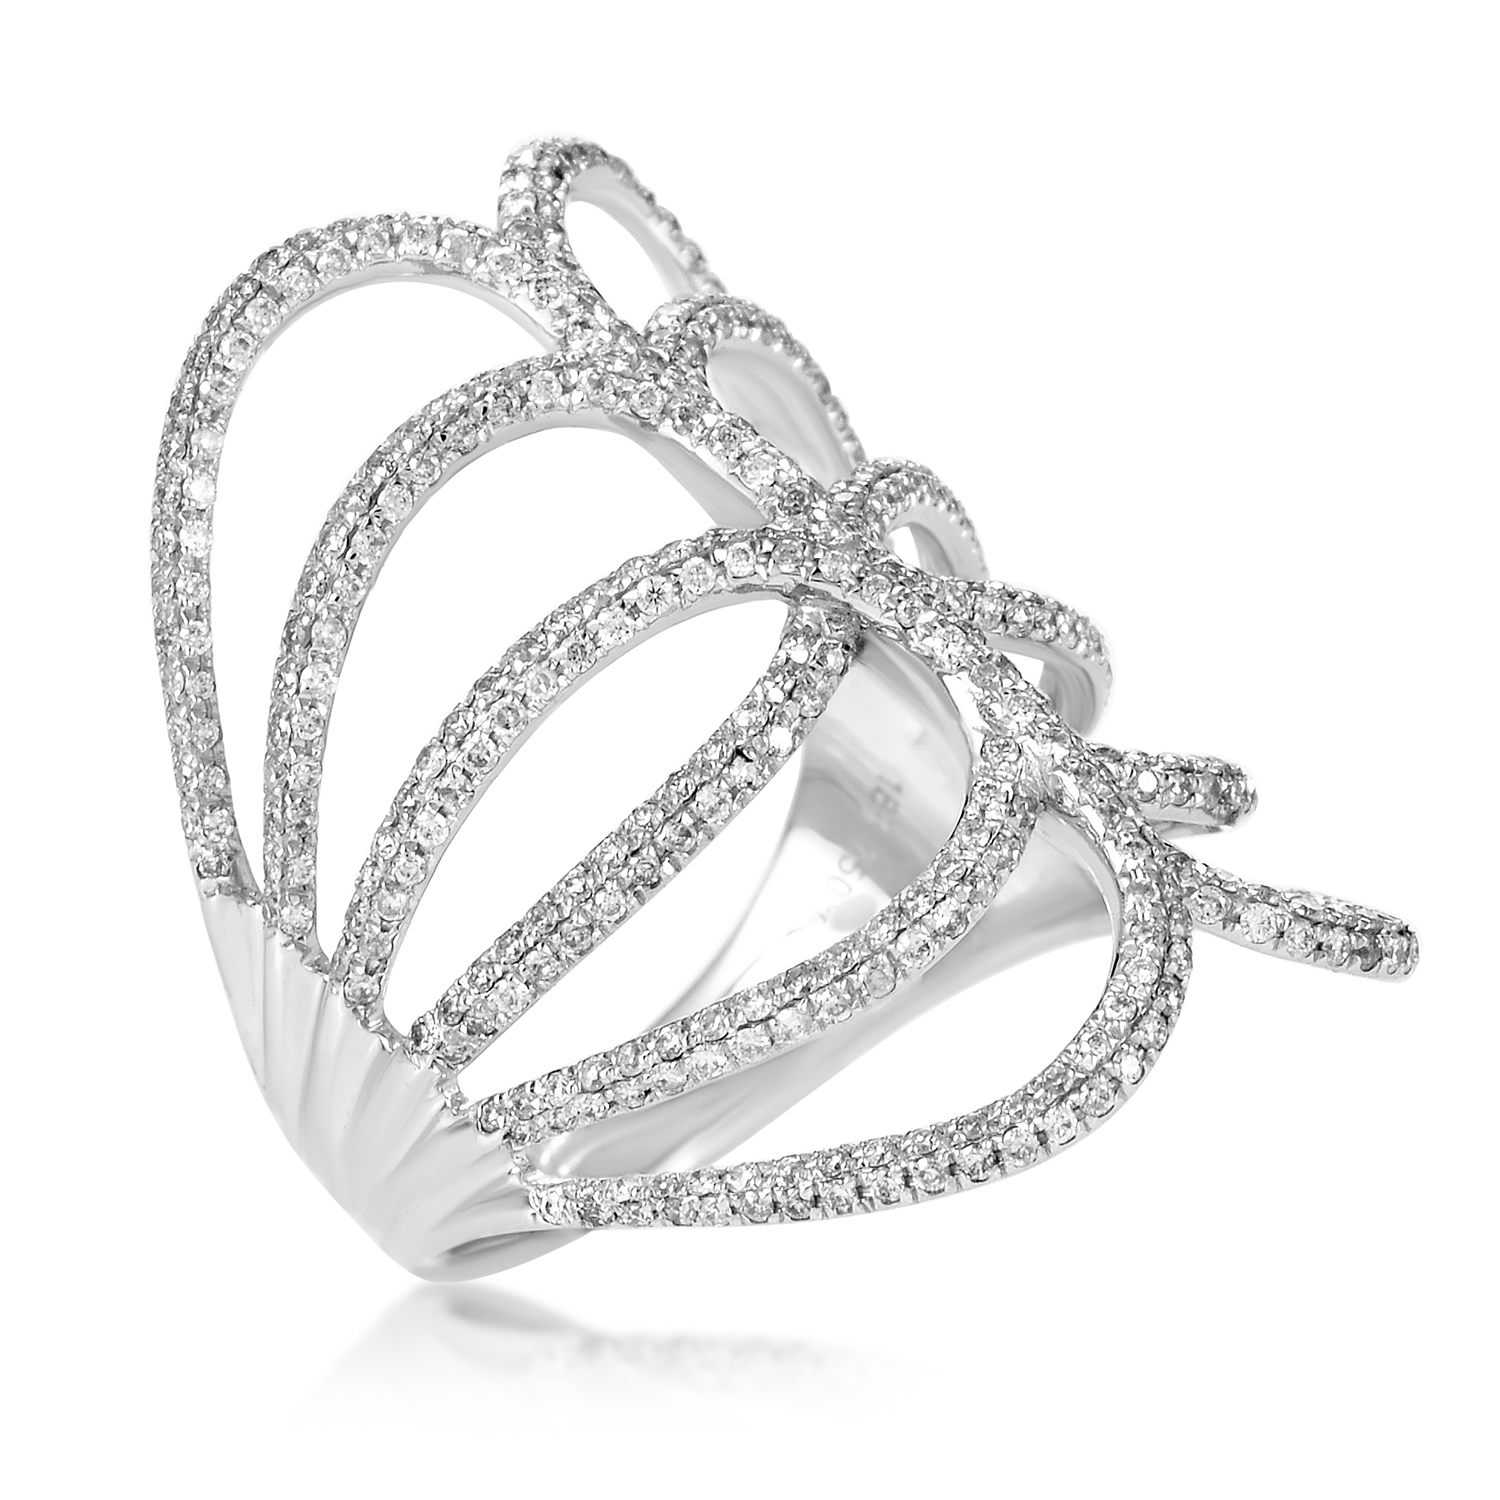 Women's 18K White Gold Openwork Diamond Band Ring KO08681RFBZ